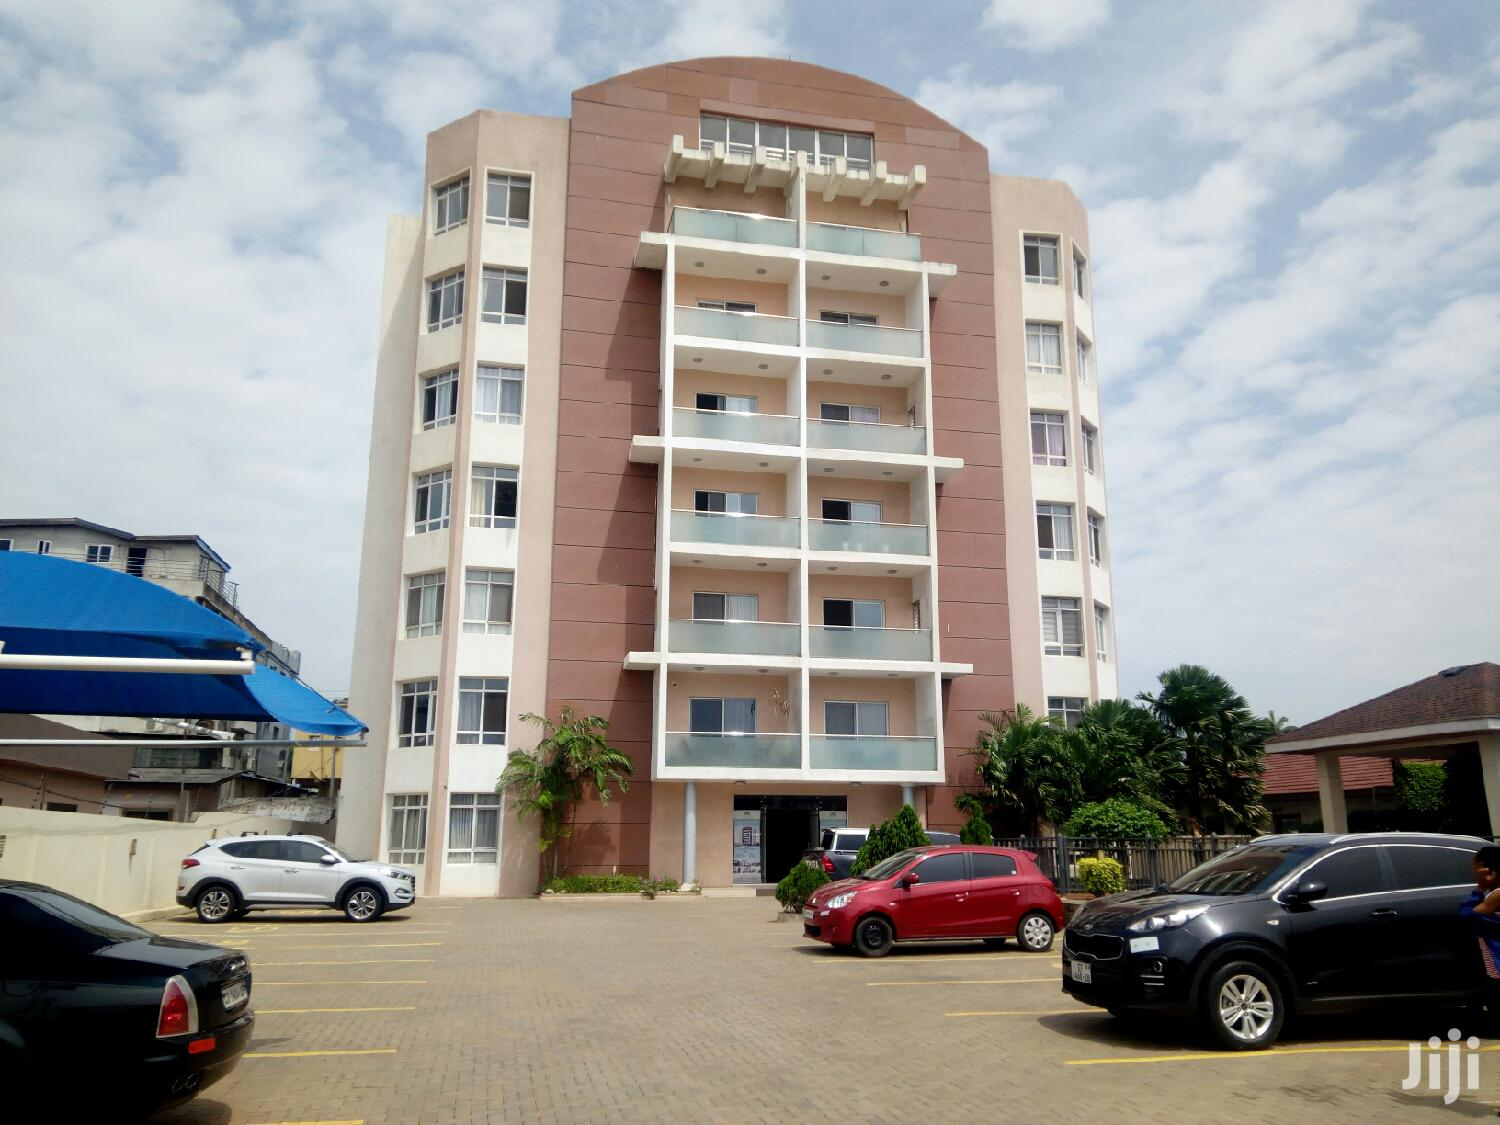 Executive 3 Bedroom Flat at Dzorwulu 4 Sale | Houses & Apartments For Sale for sale in Dzorwulu, Greater Accra, Ghana